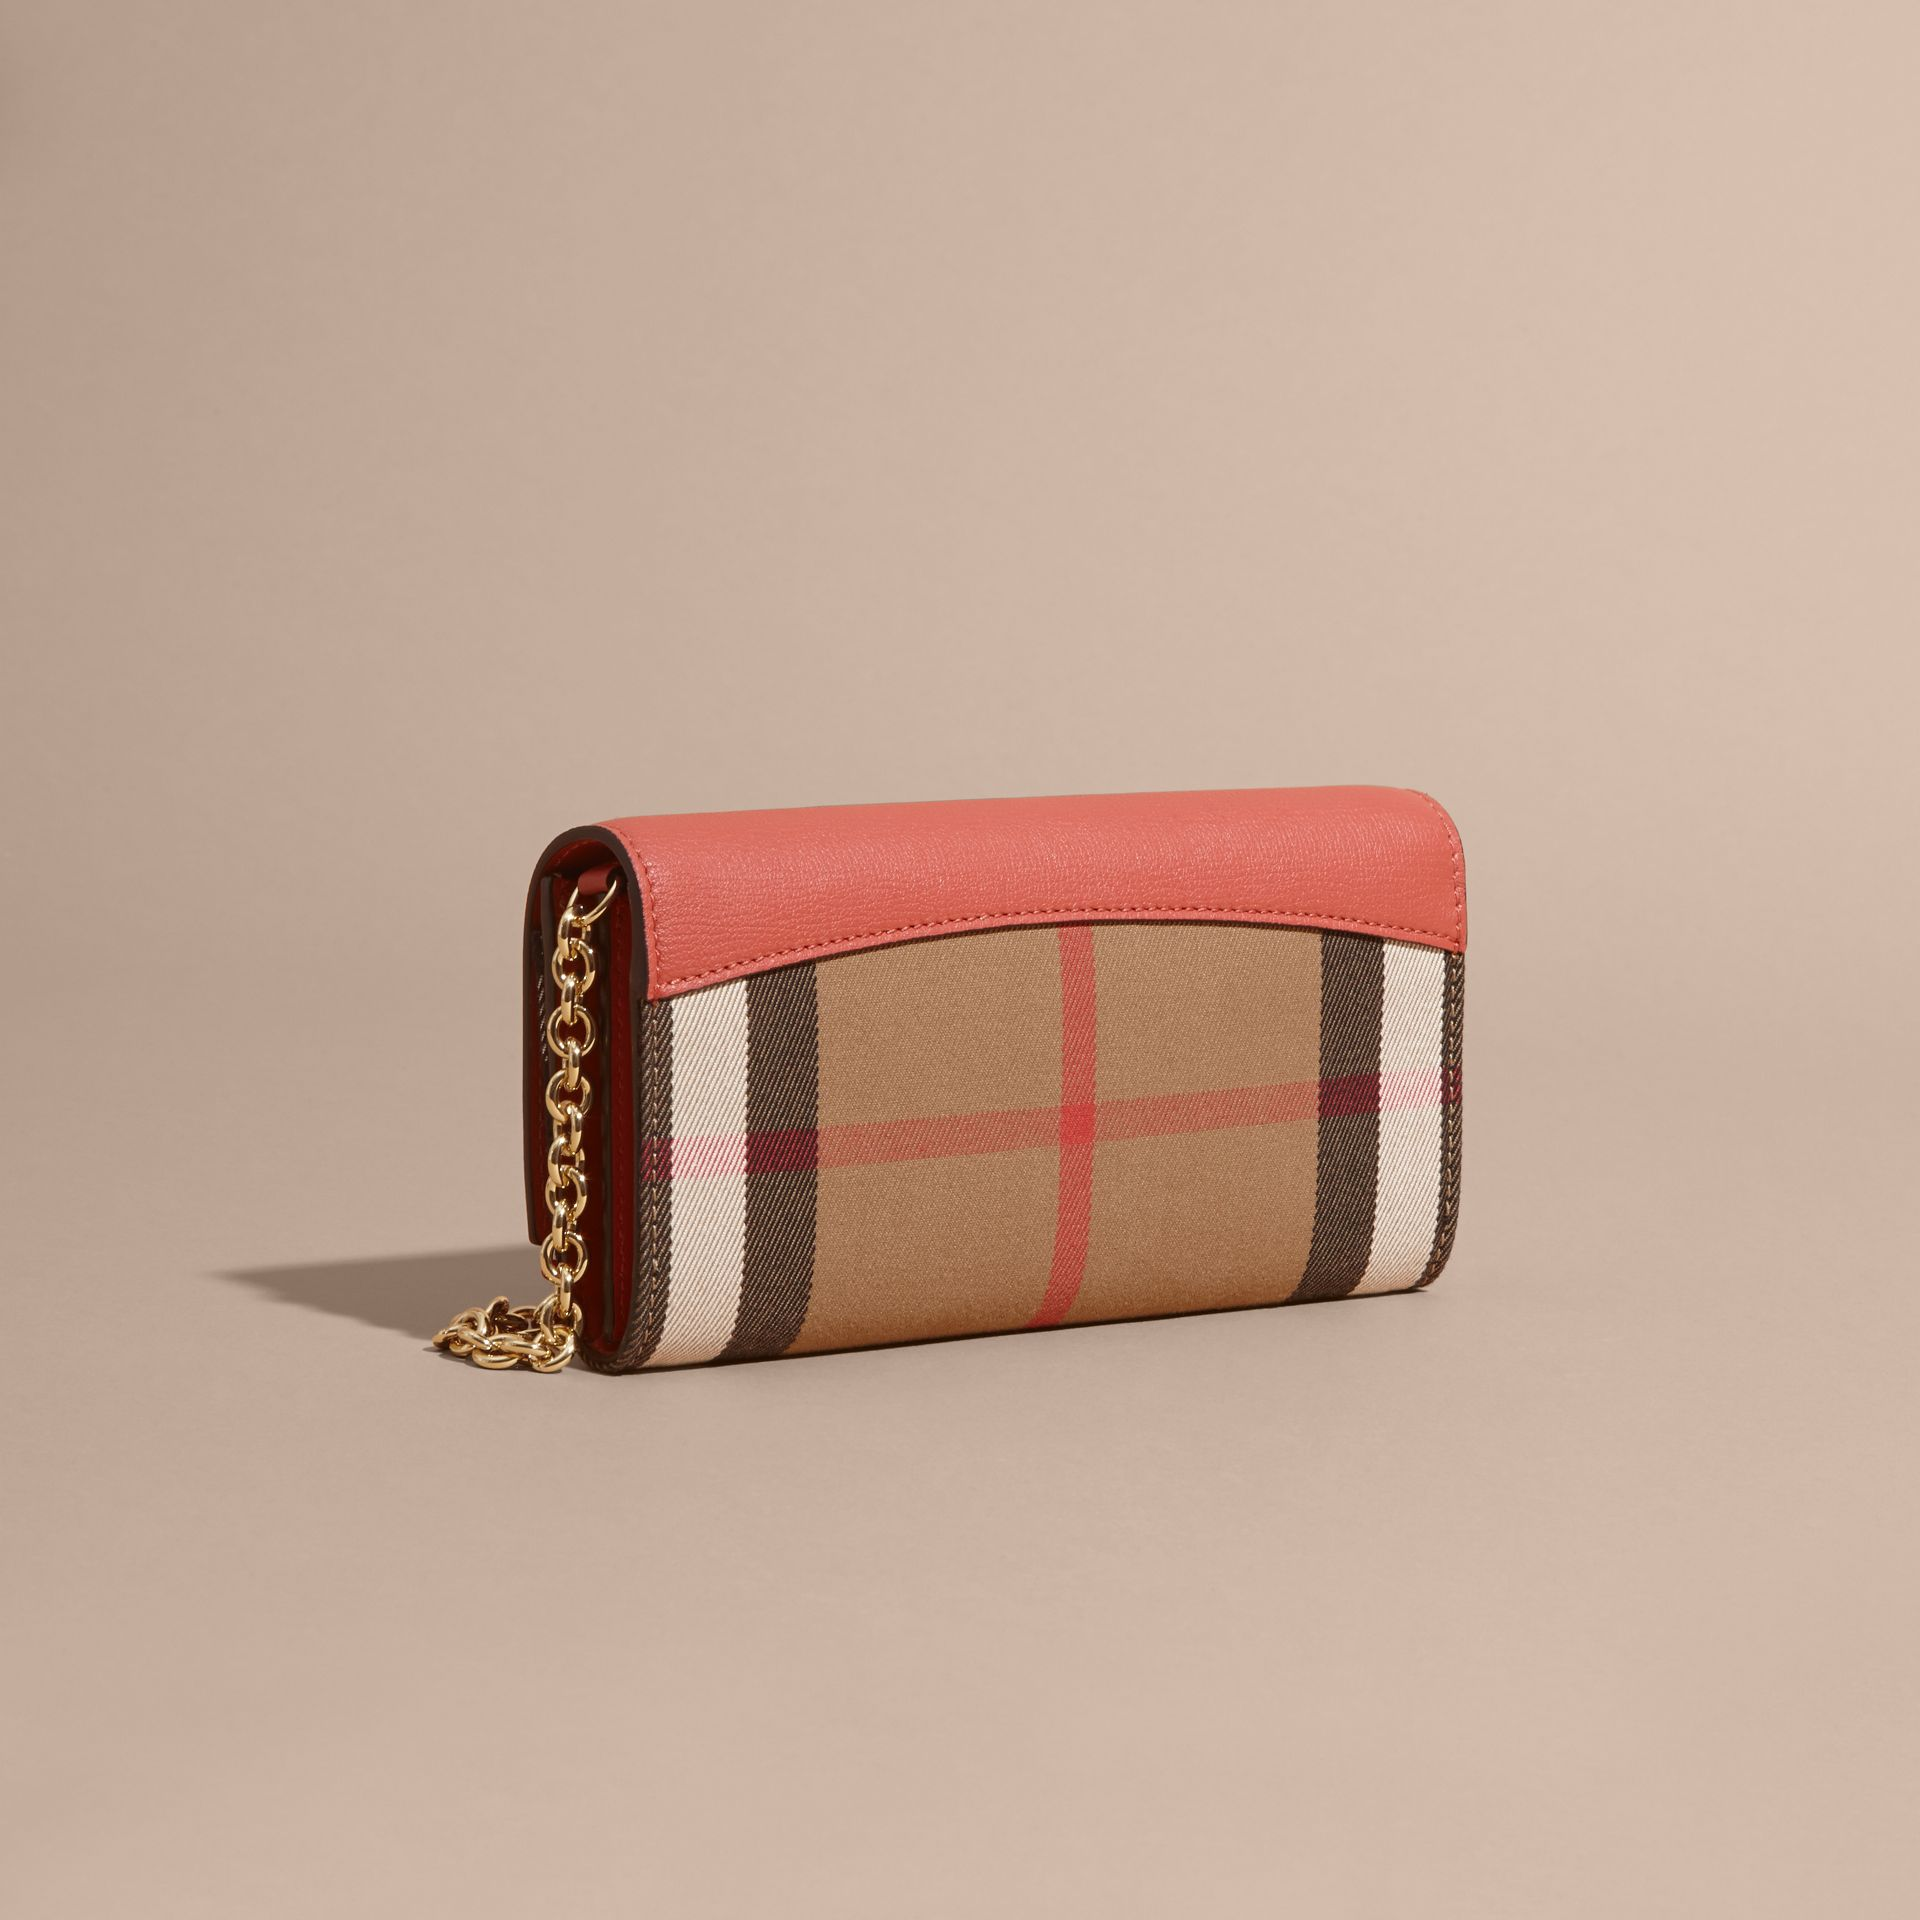 House Check and Leather Wallet with Chain in Cinnamon Red - Women | Burberry United States - gallery image 4